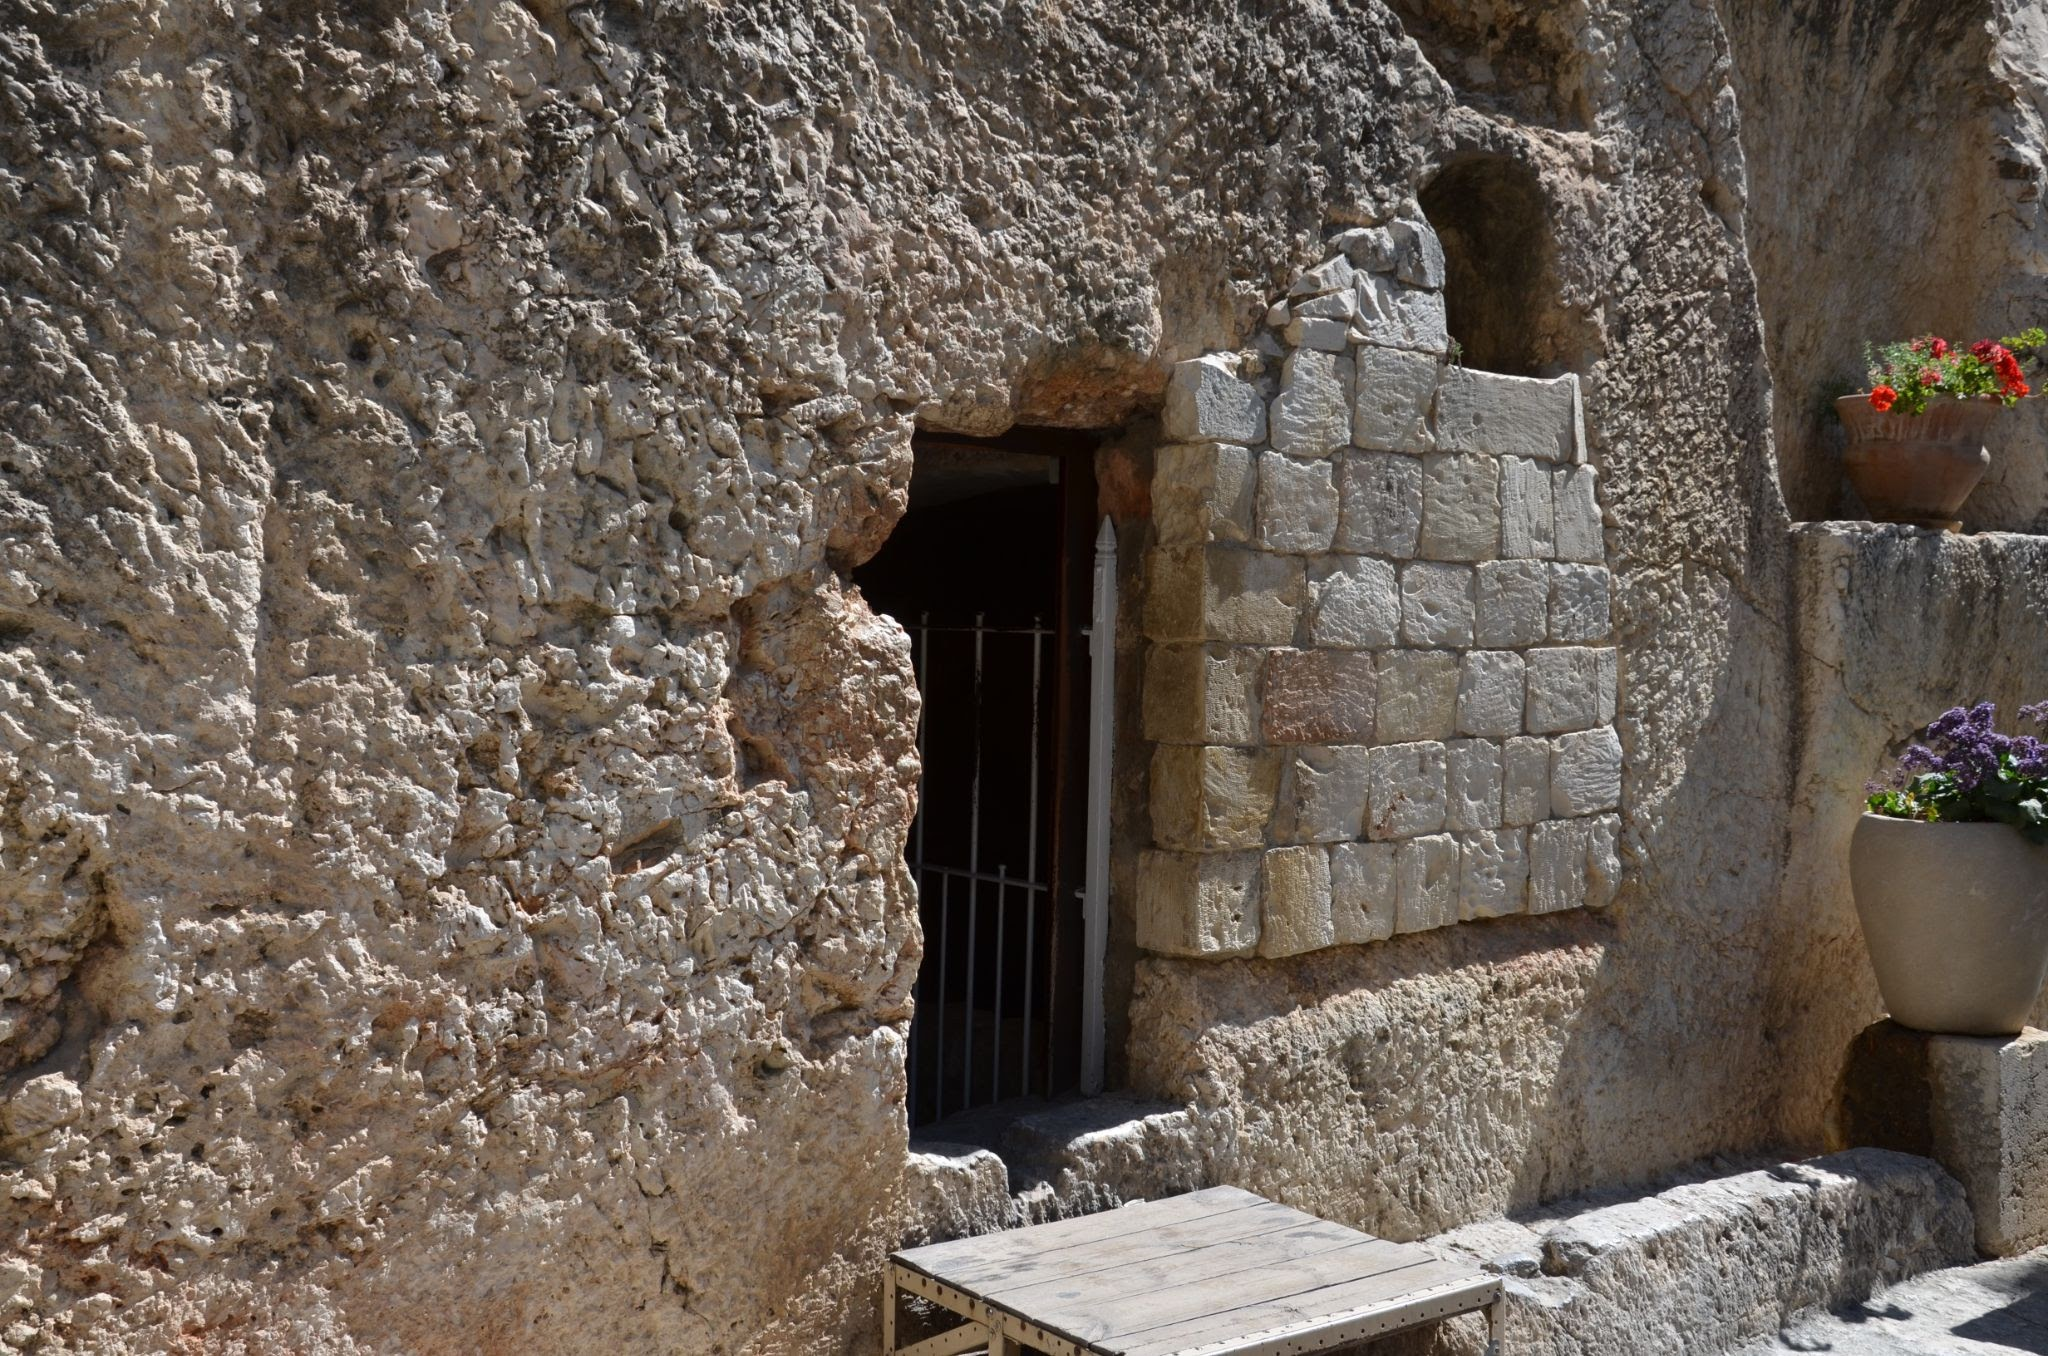 A tomb in Jerusalem representing the place of Jesus' resurrection